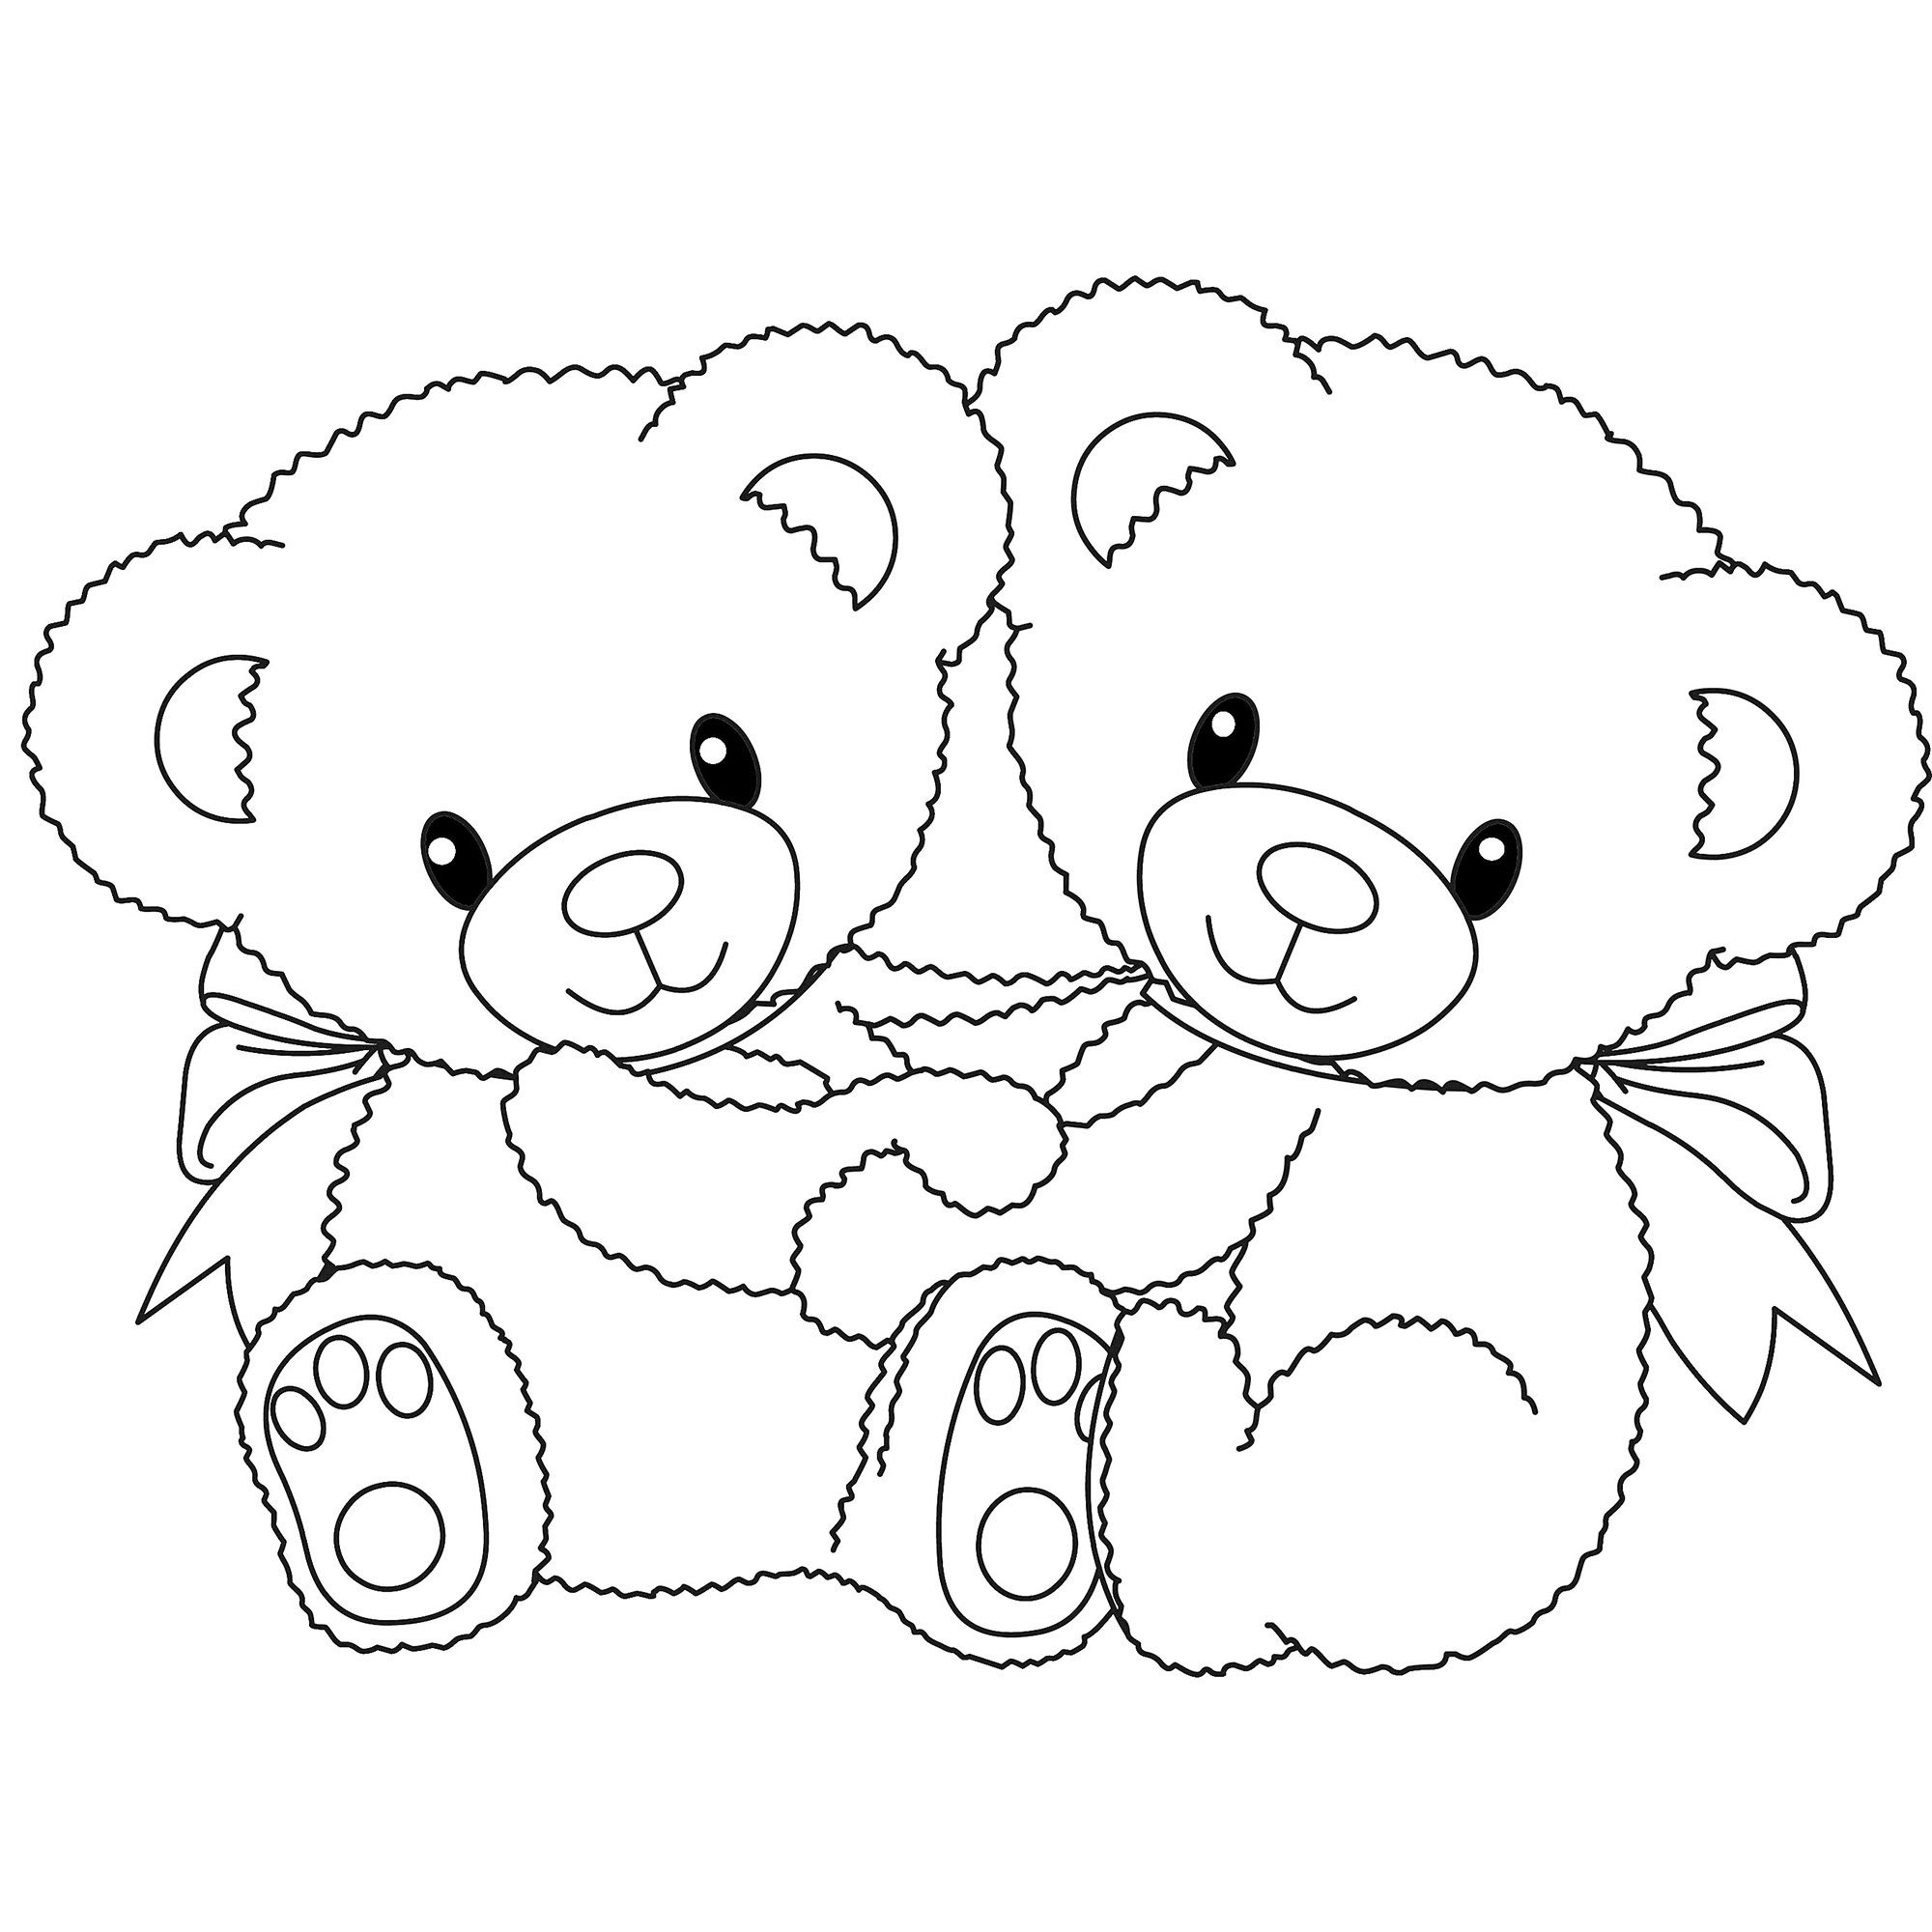 Teddy Bear Coloring Pages Free Printable Coloring Pages   Fun - Teddy Bear Coloring Pages Free Printable